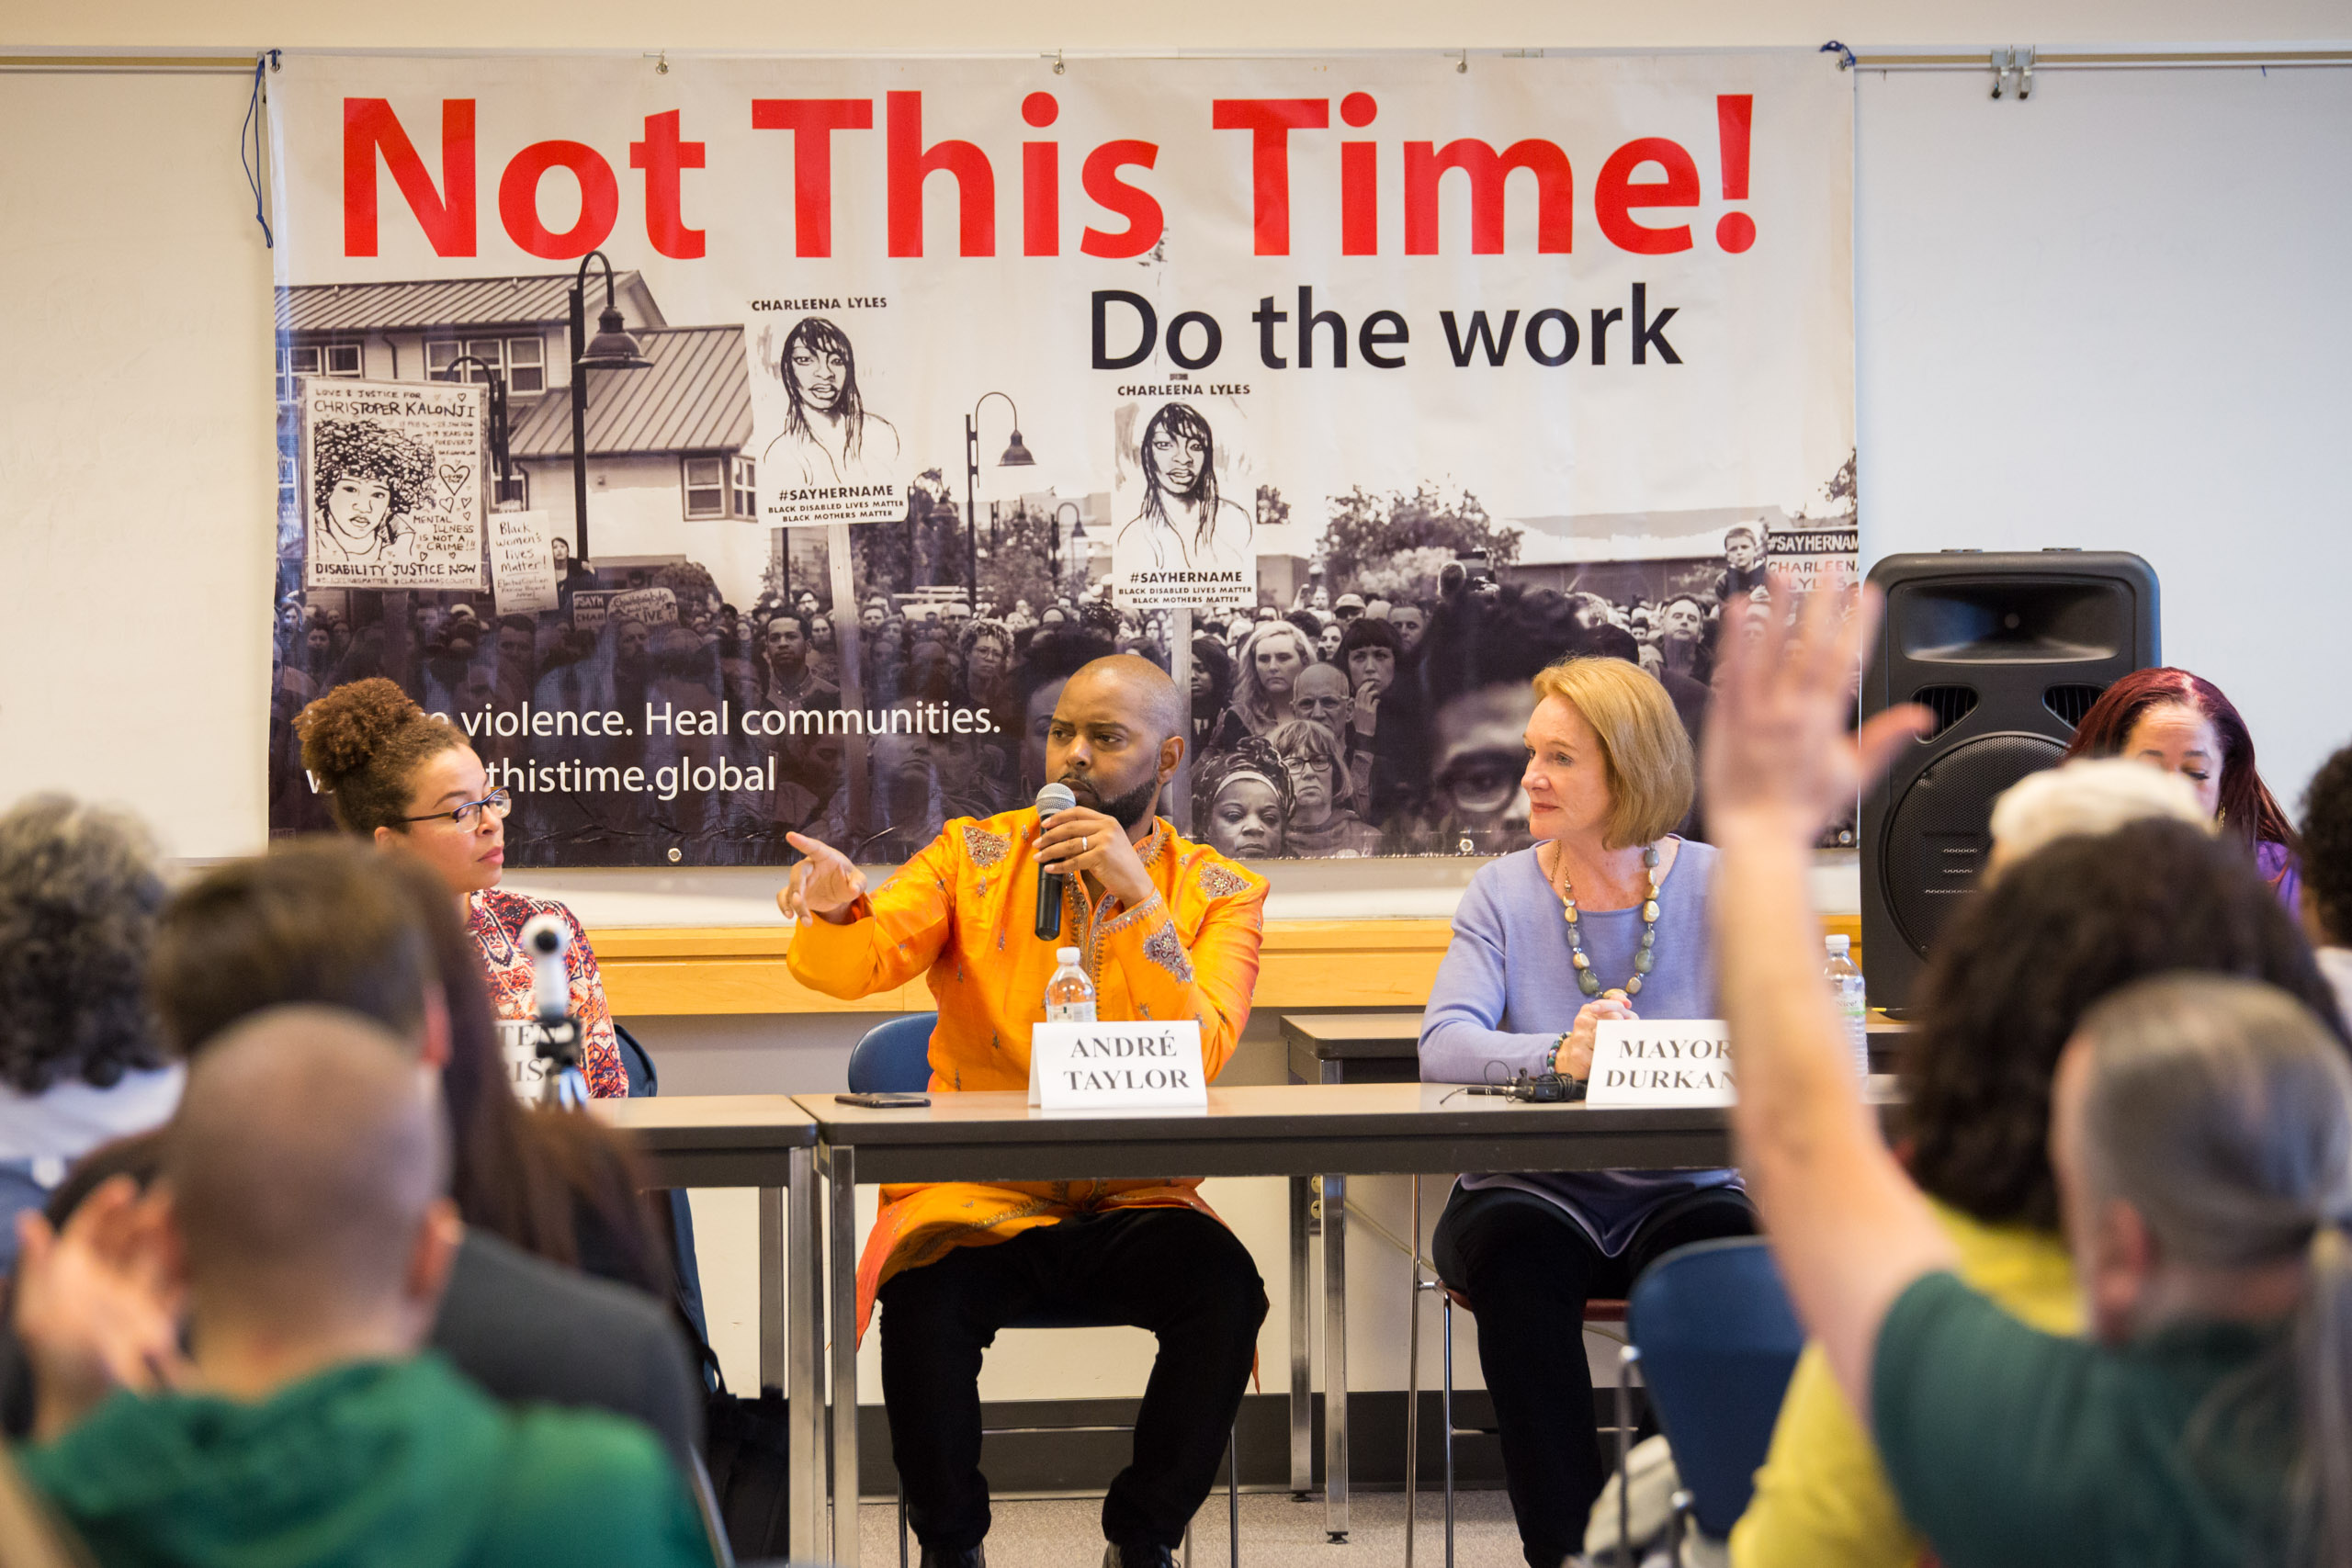 Not This Time Mayoral Meeting